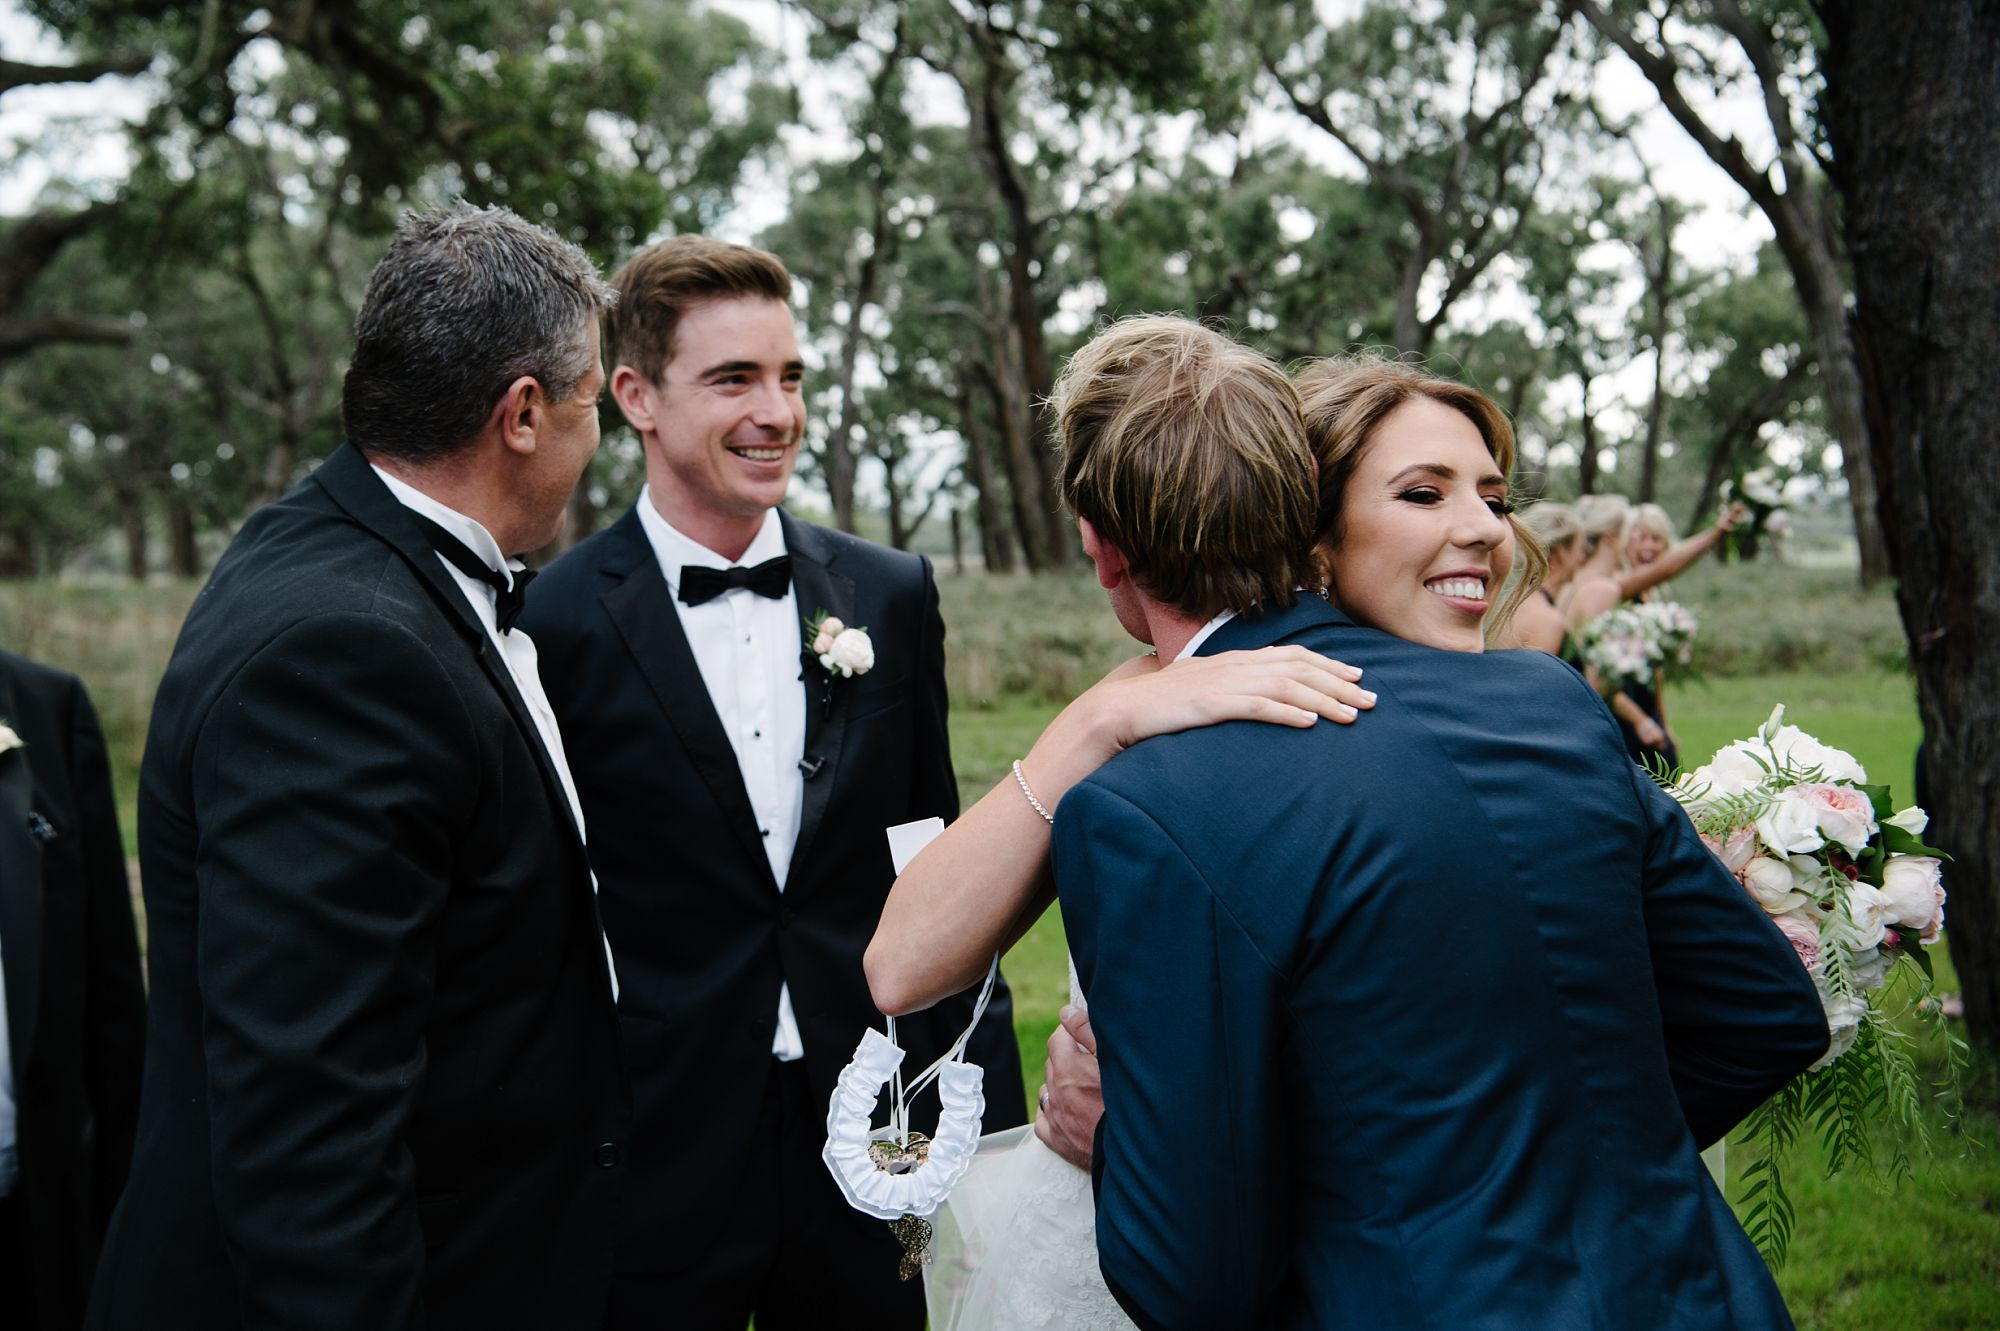 Tanglewood-mornington-peninsula-wedding_0032.jpg